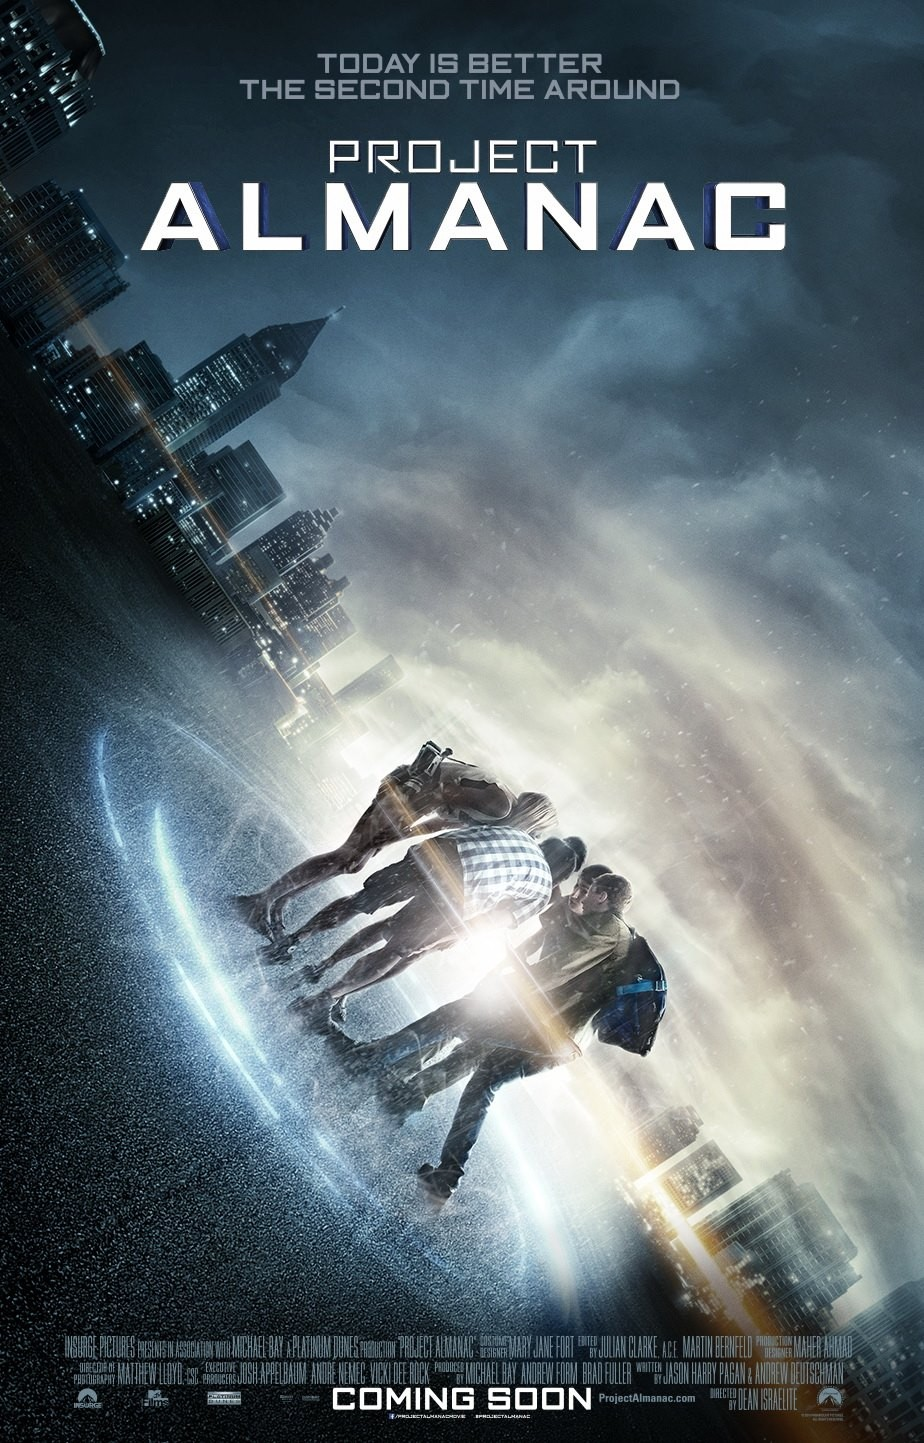 Project Almanac-Official Poster XXLG-20NOVEMBRO2014